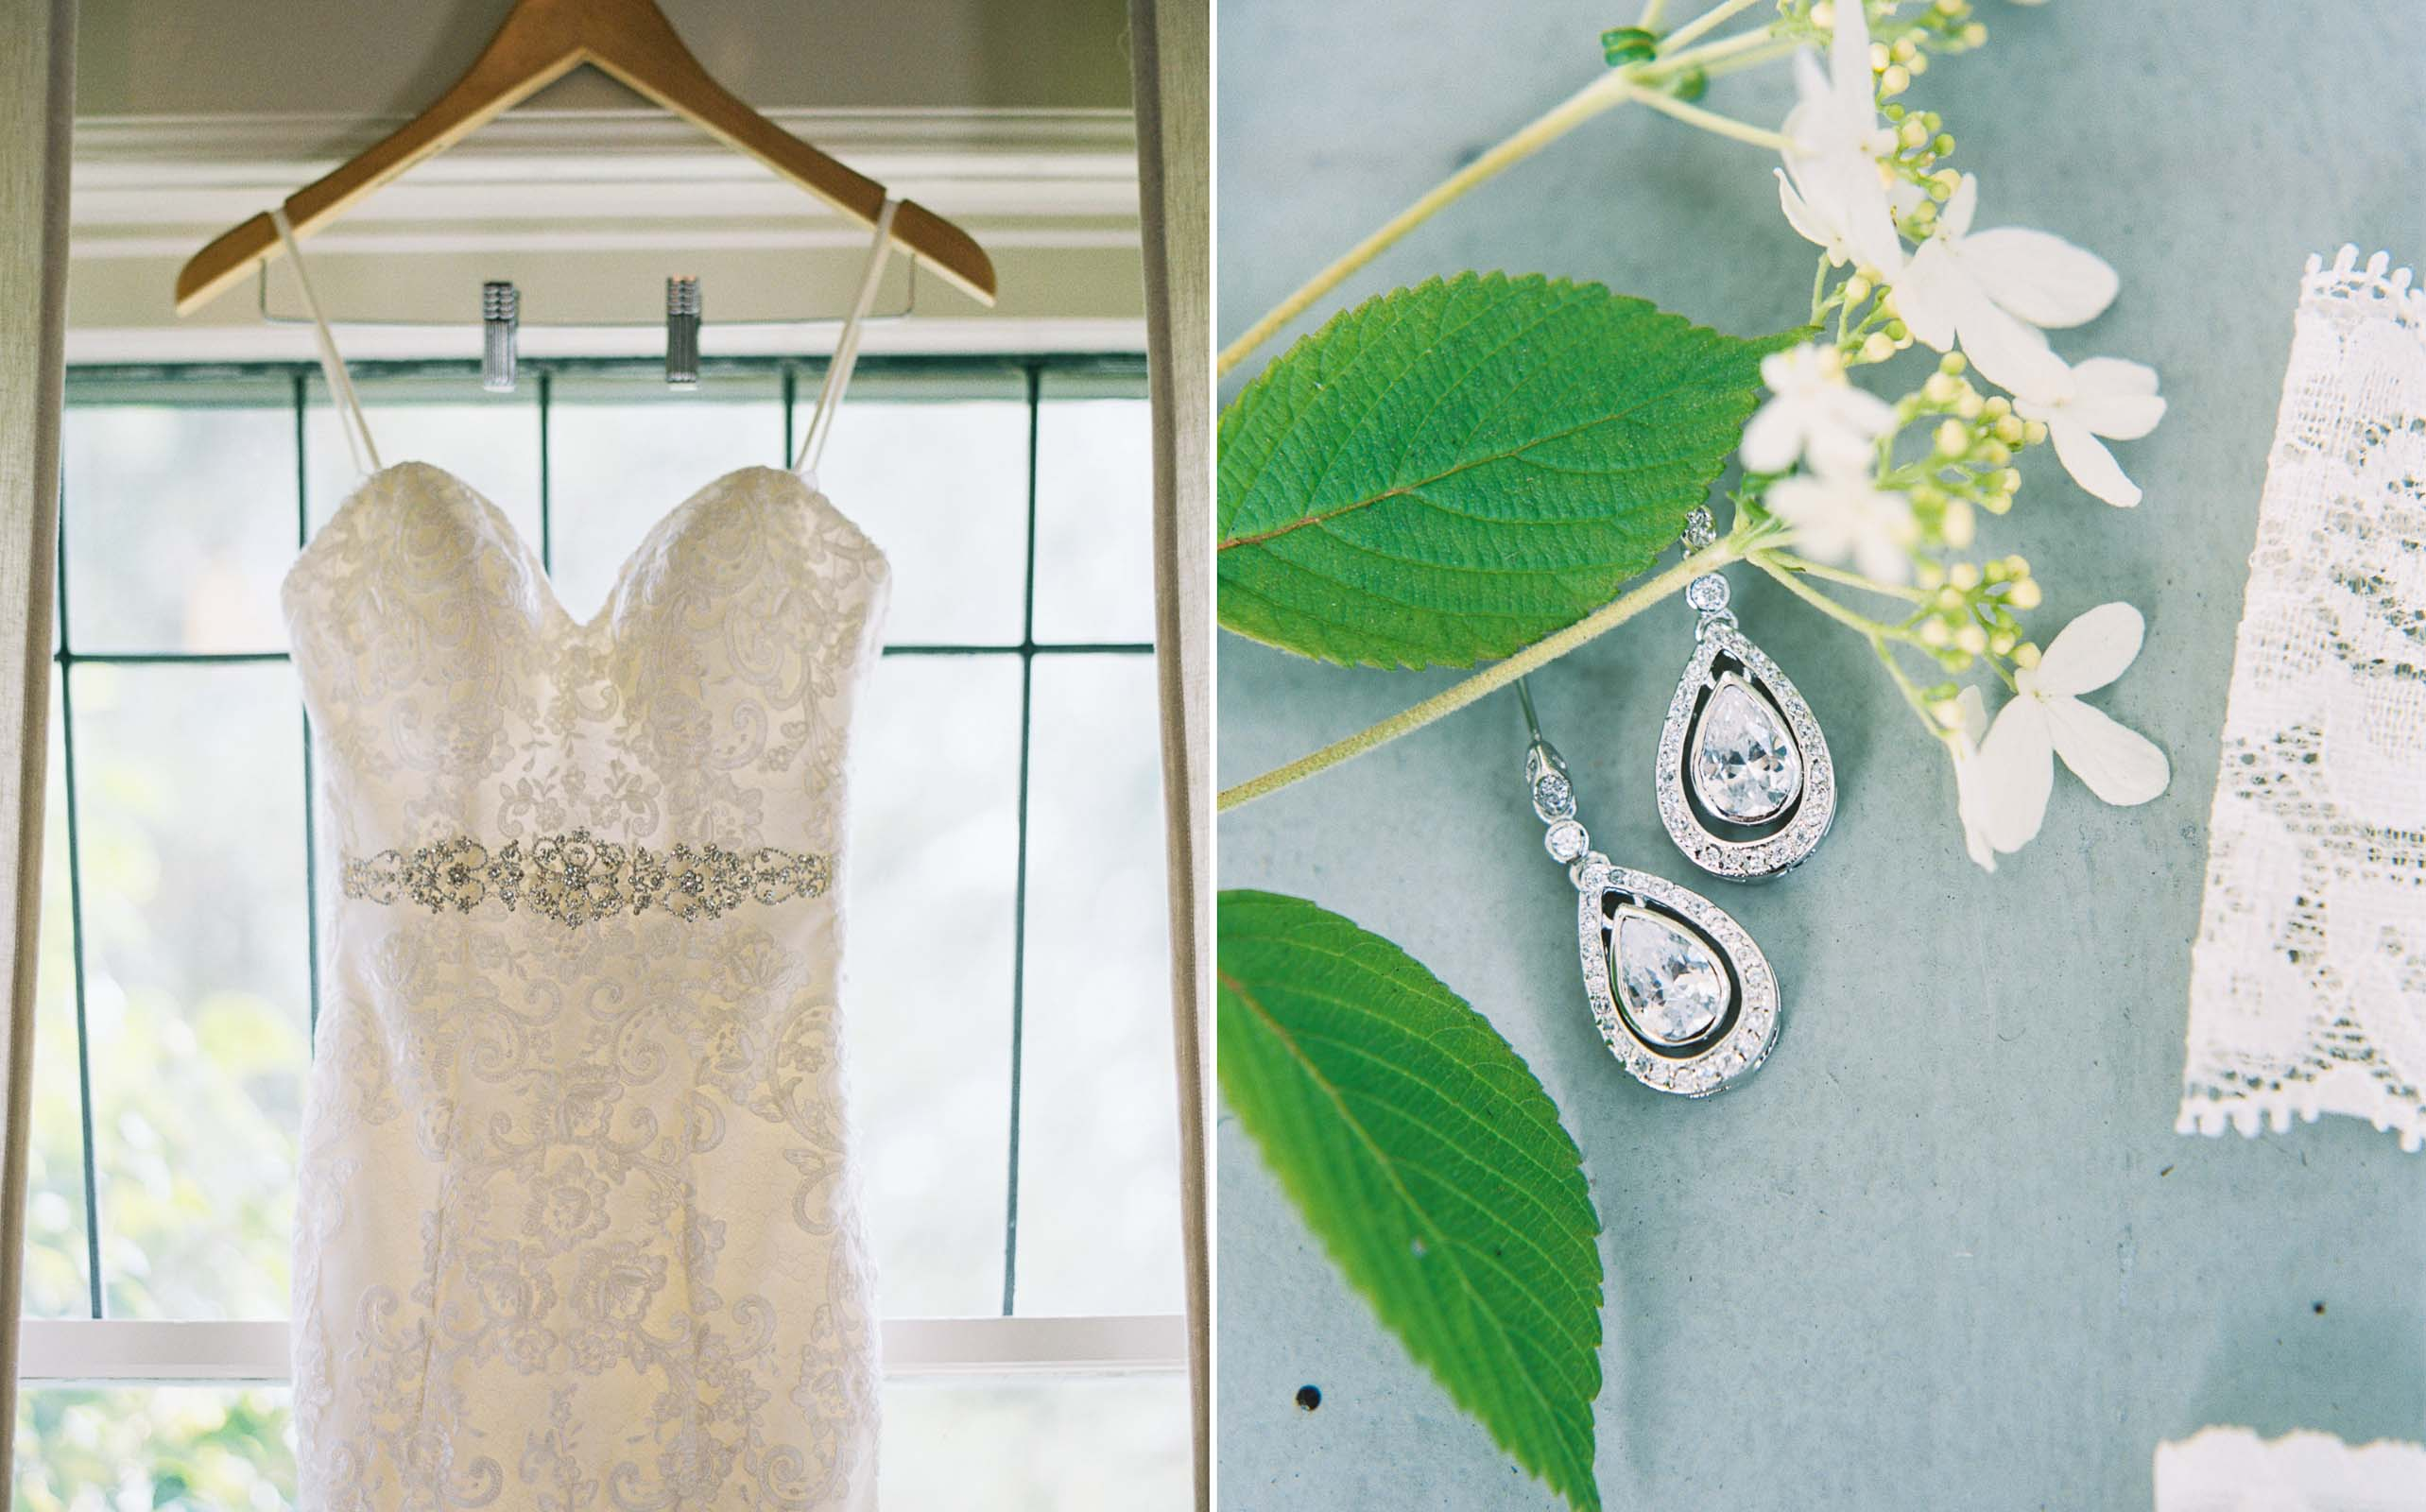 Wedding gown and jewelry details at an Elegant Lord Hill Farms wedding